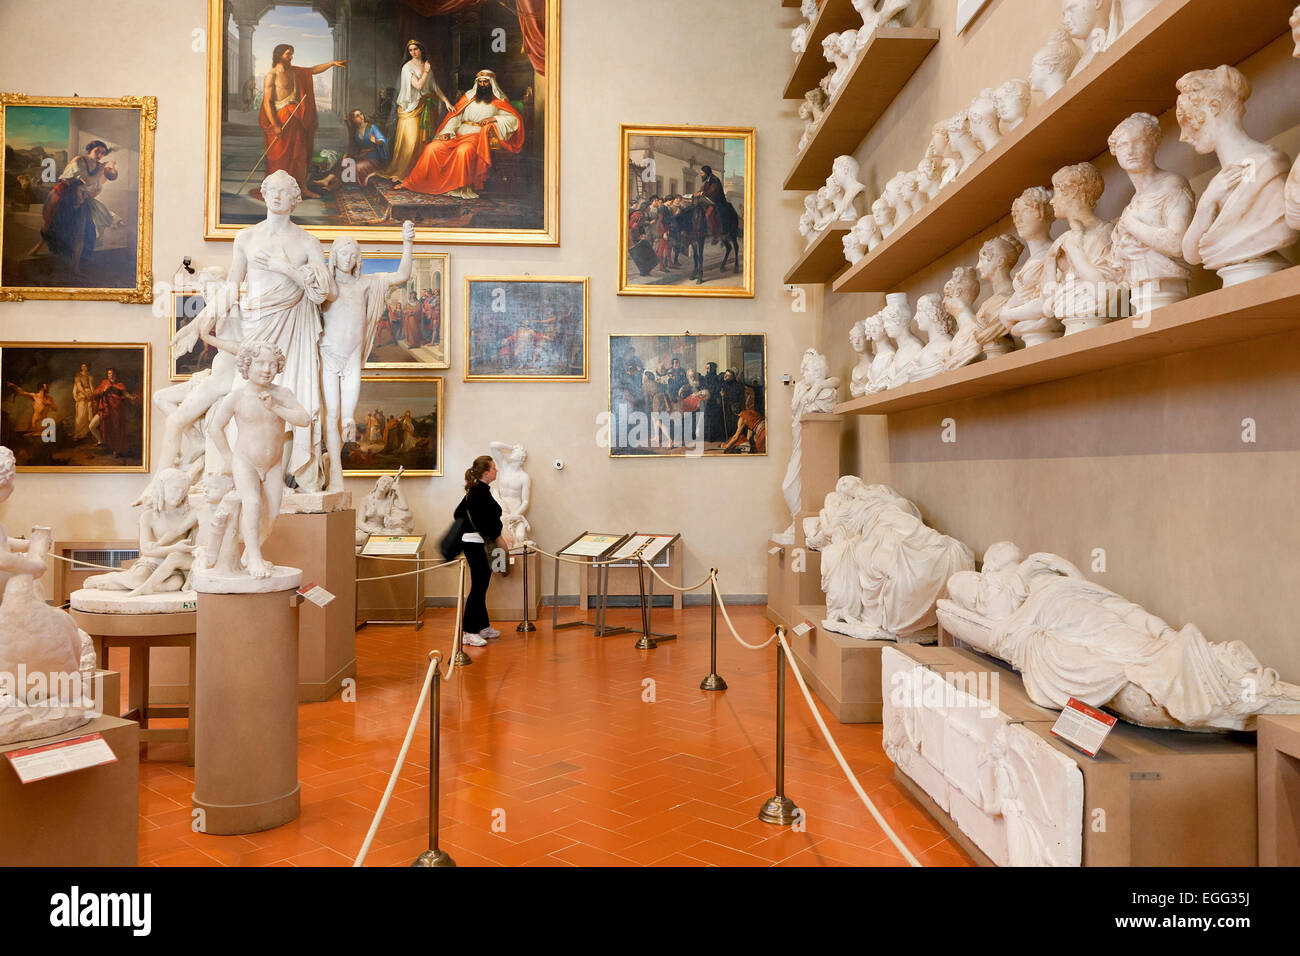 Italy, Florence, Accademia di Belle Arti - Stock Image